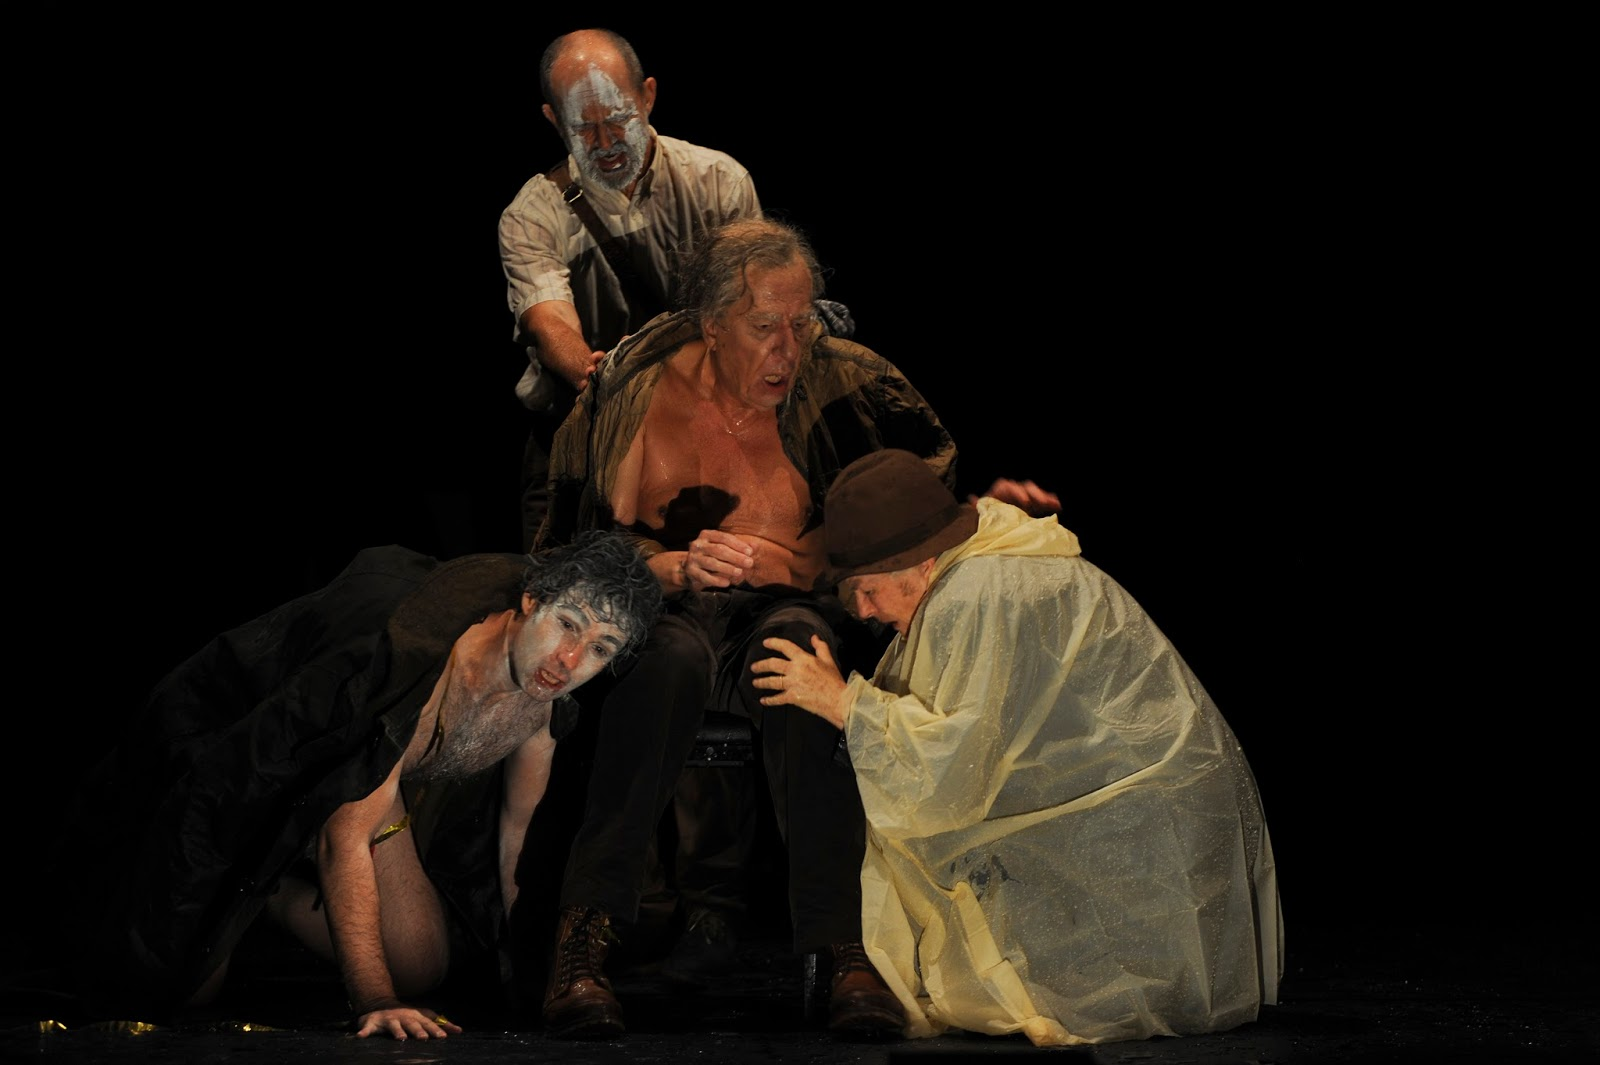 an analysis of the good versus evil in king lear a play by william shakespeare Analyzing shakespeare's king lear one of the broadest themes to emerge from this play is the classic conflict of good vs evil king lear: themes & analysis.